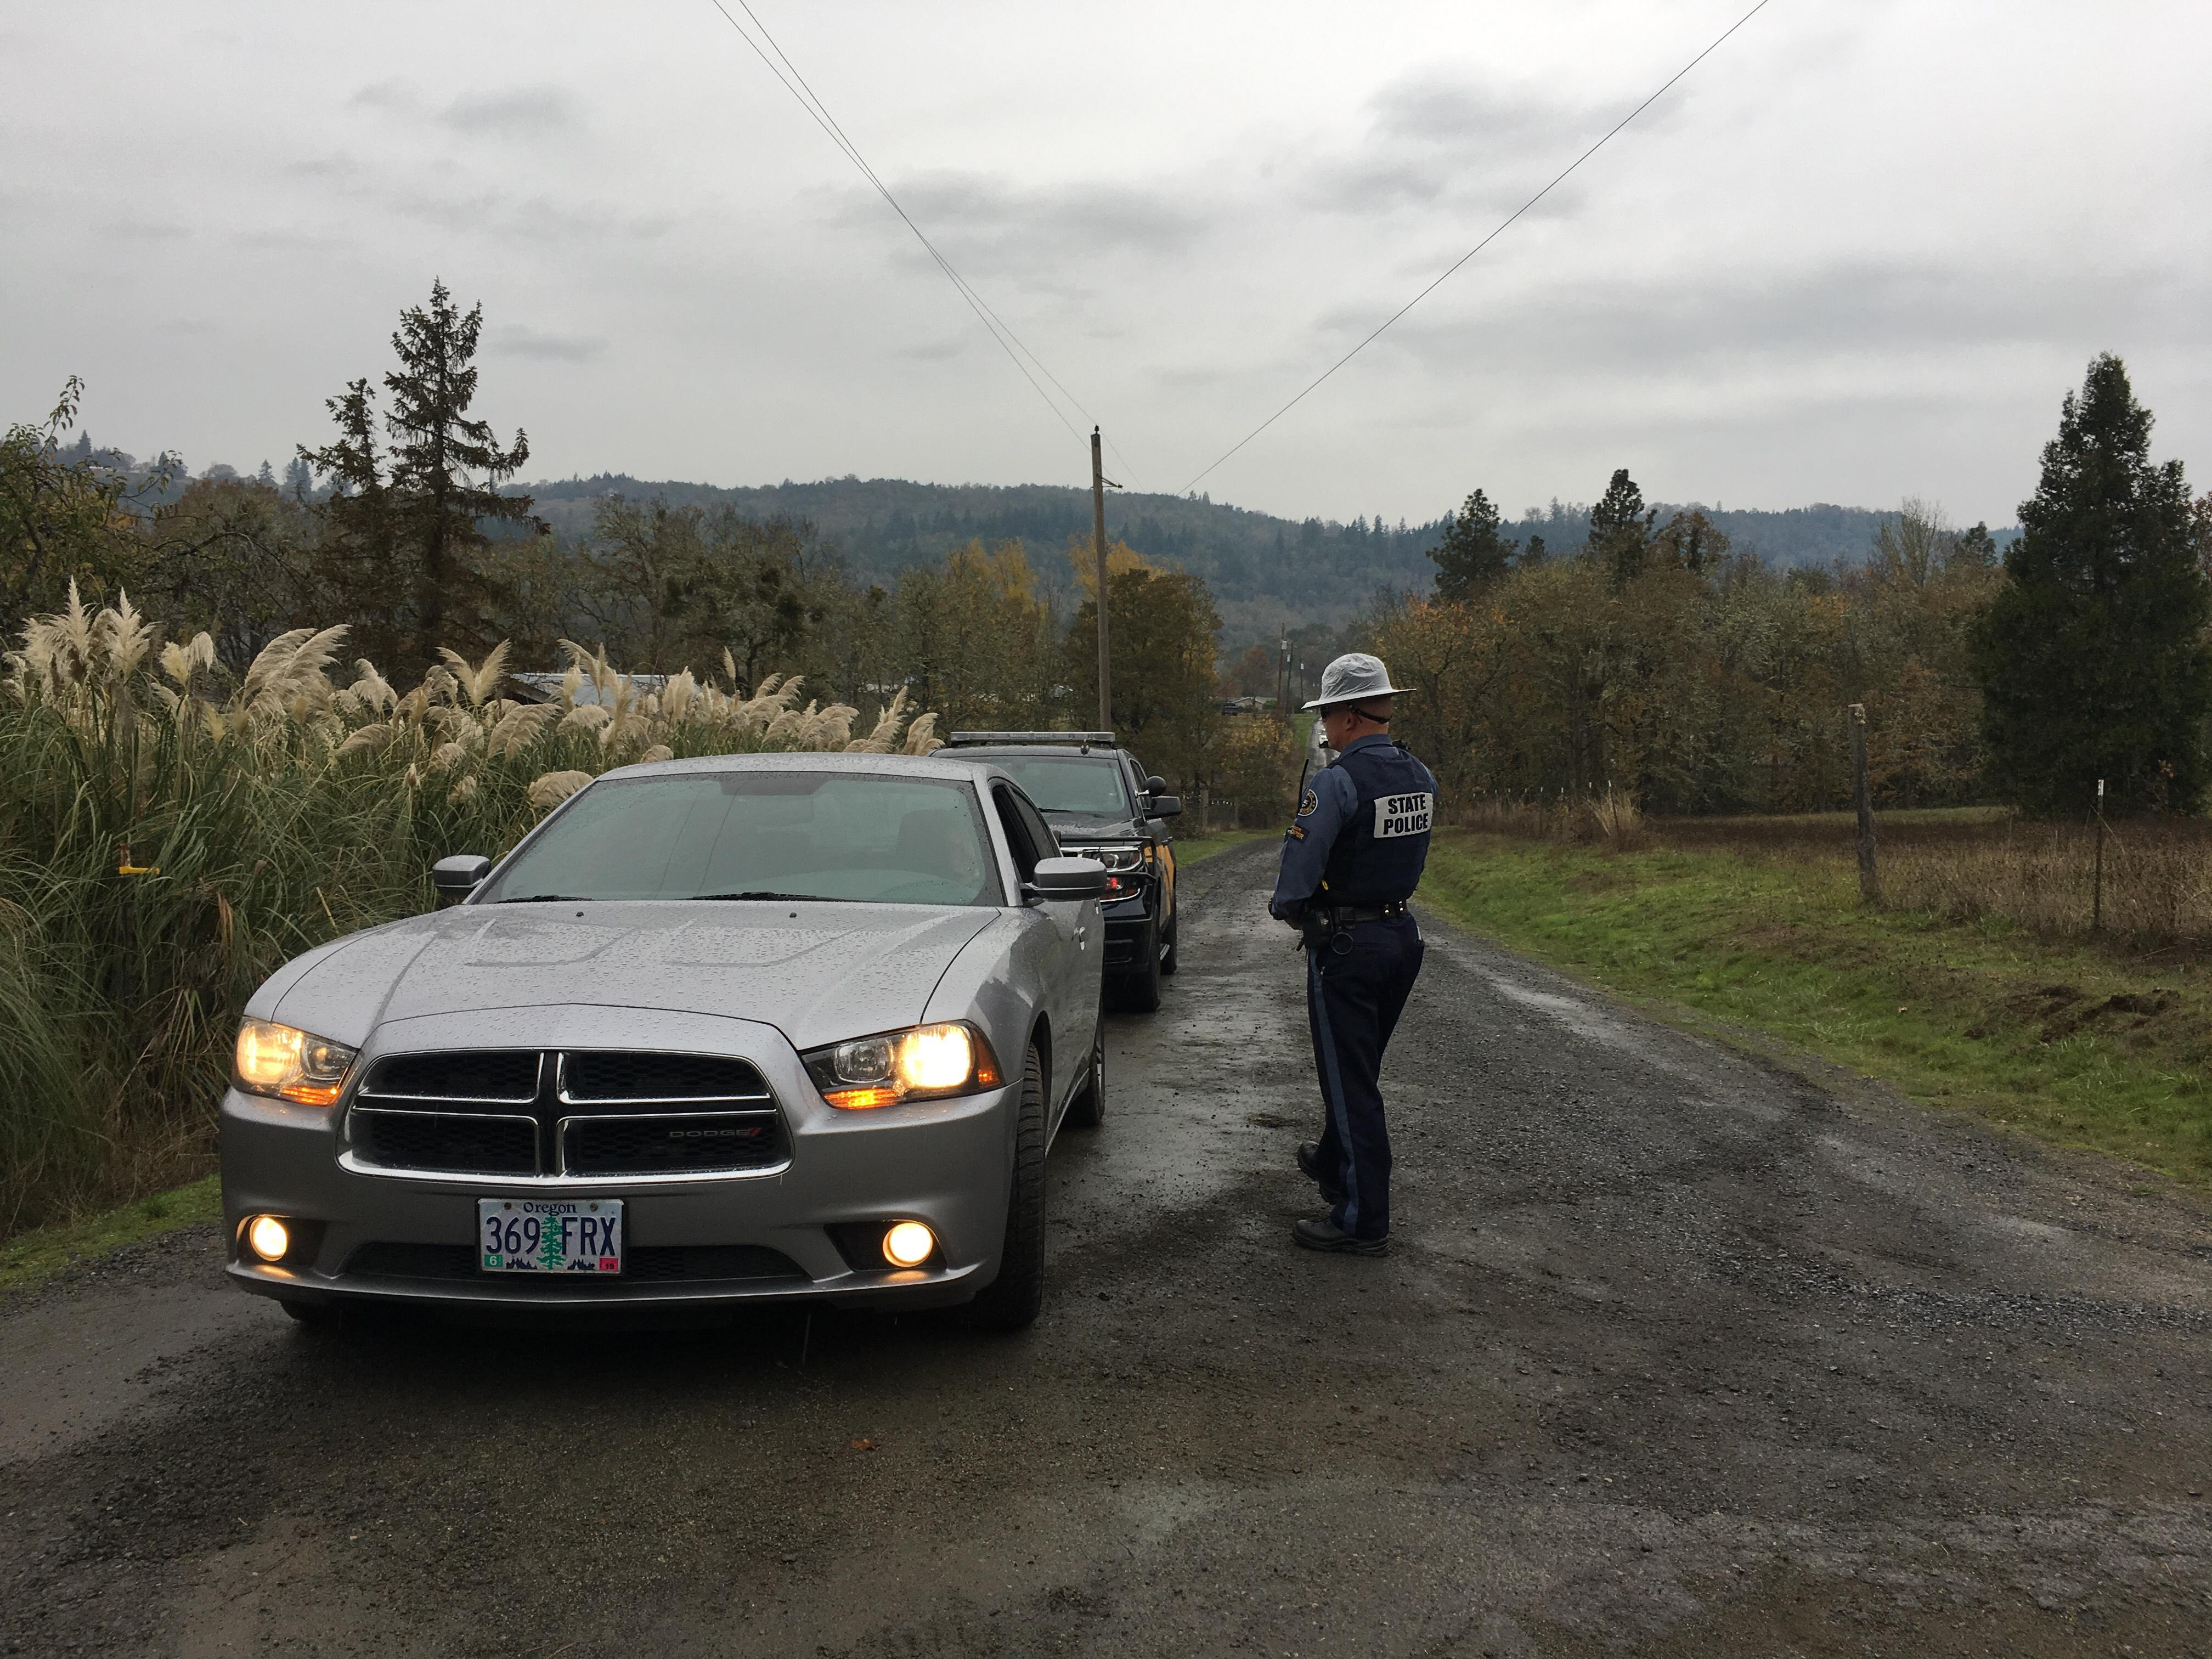 Troopers close off the road in Lookingglass as they continue investigating a triple homicide, Nov. 8, 2017. (SBG)